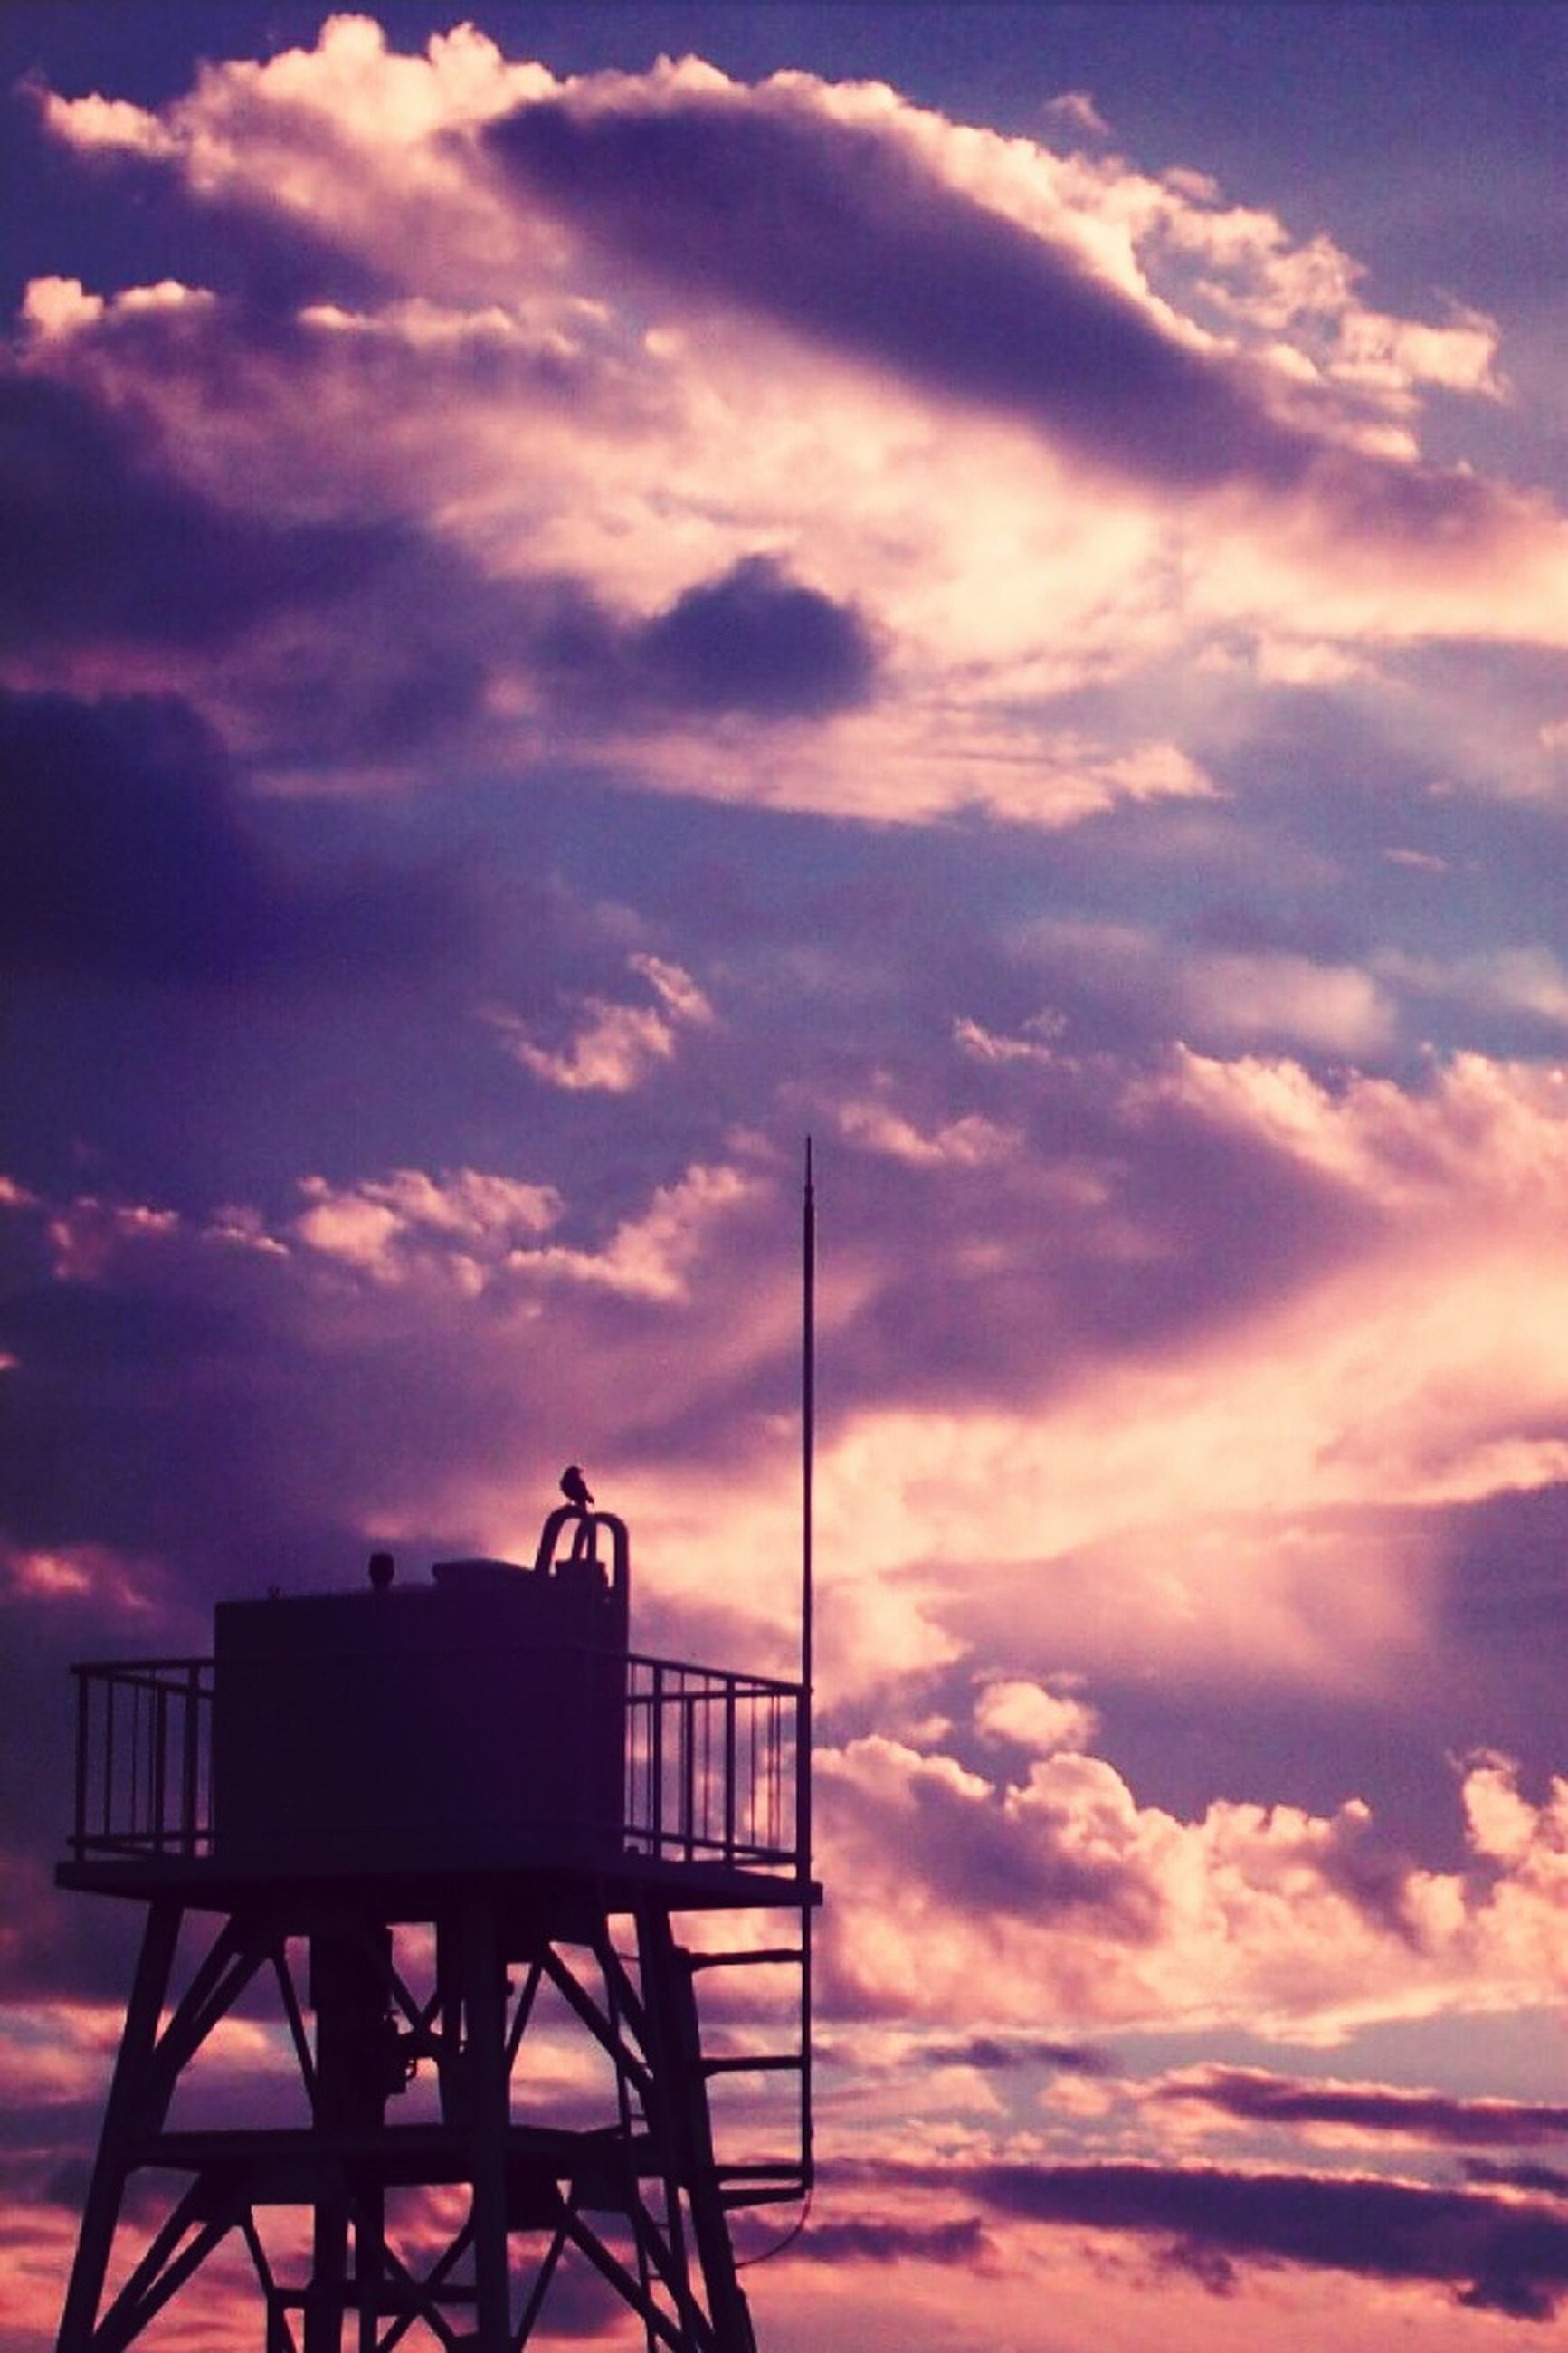 sky, sunset, cloud - sky, silhouette, cloudy, low angle view, cloud, orange color, dramatic sky, built structure, communication, nature, beauty in nature, weather, outdoors, tranquility, scenics, architecture, overcast, no people